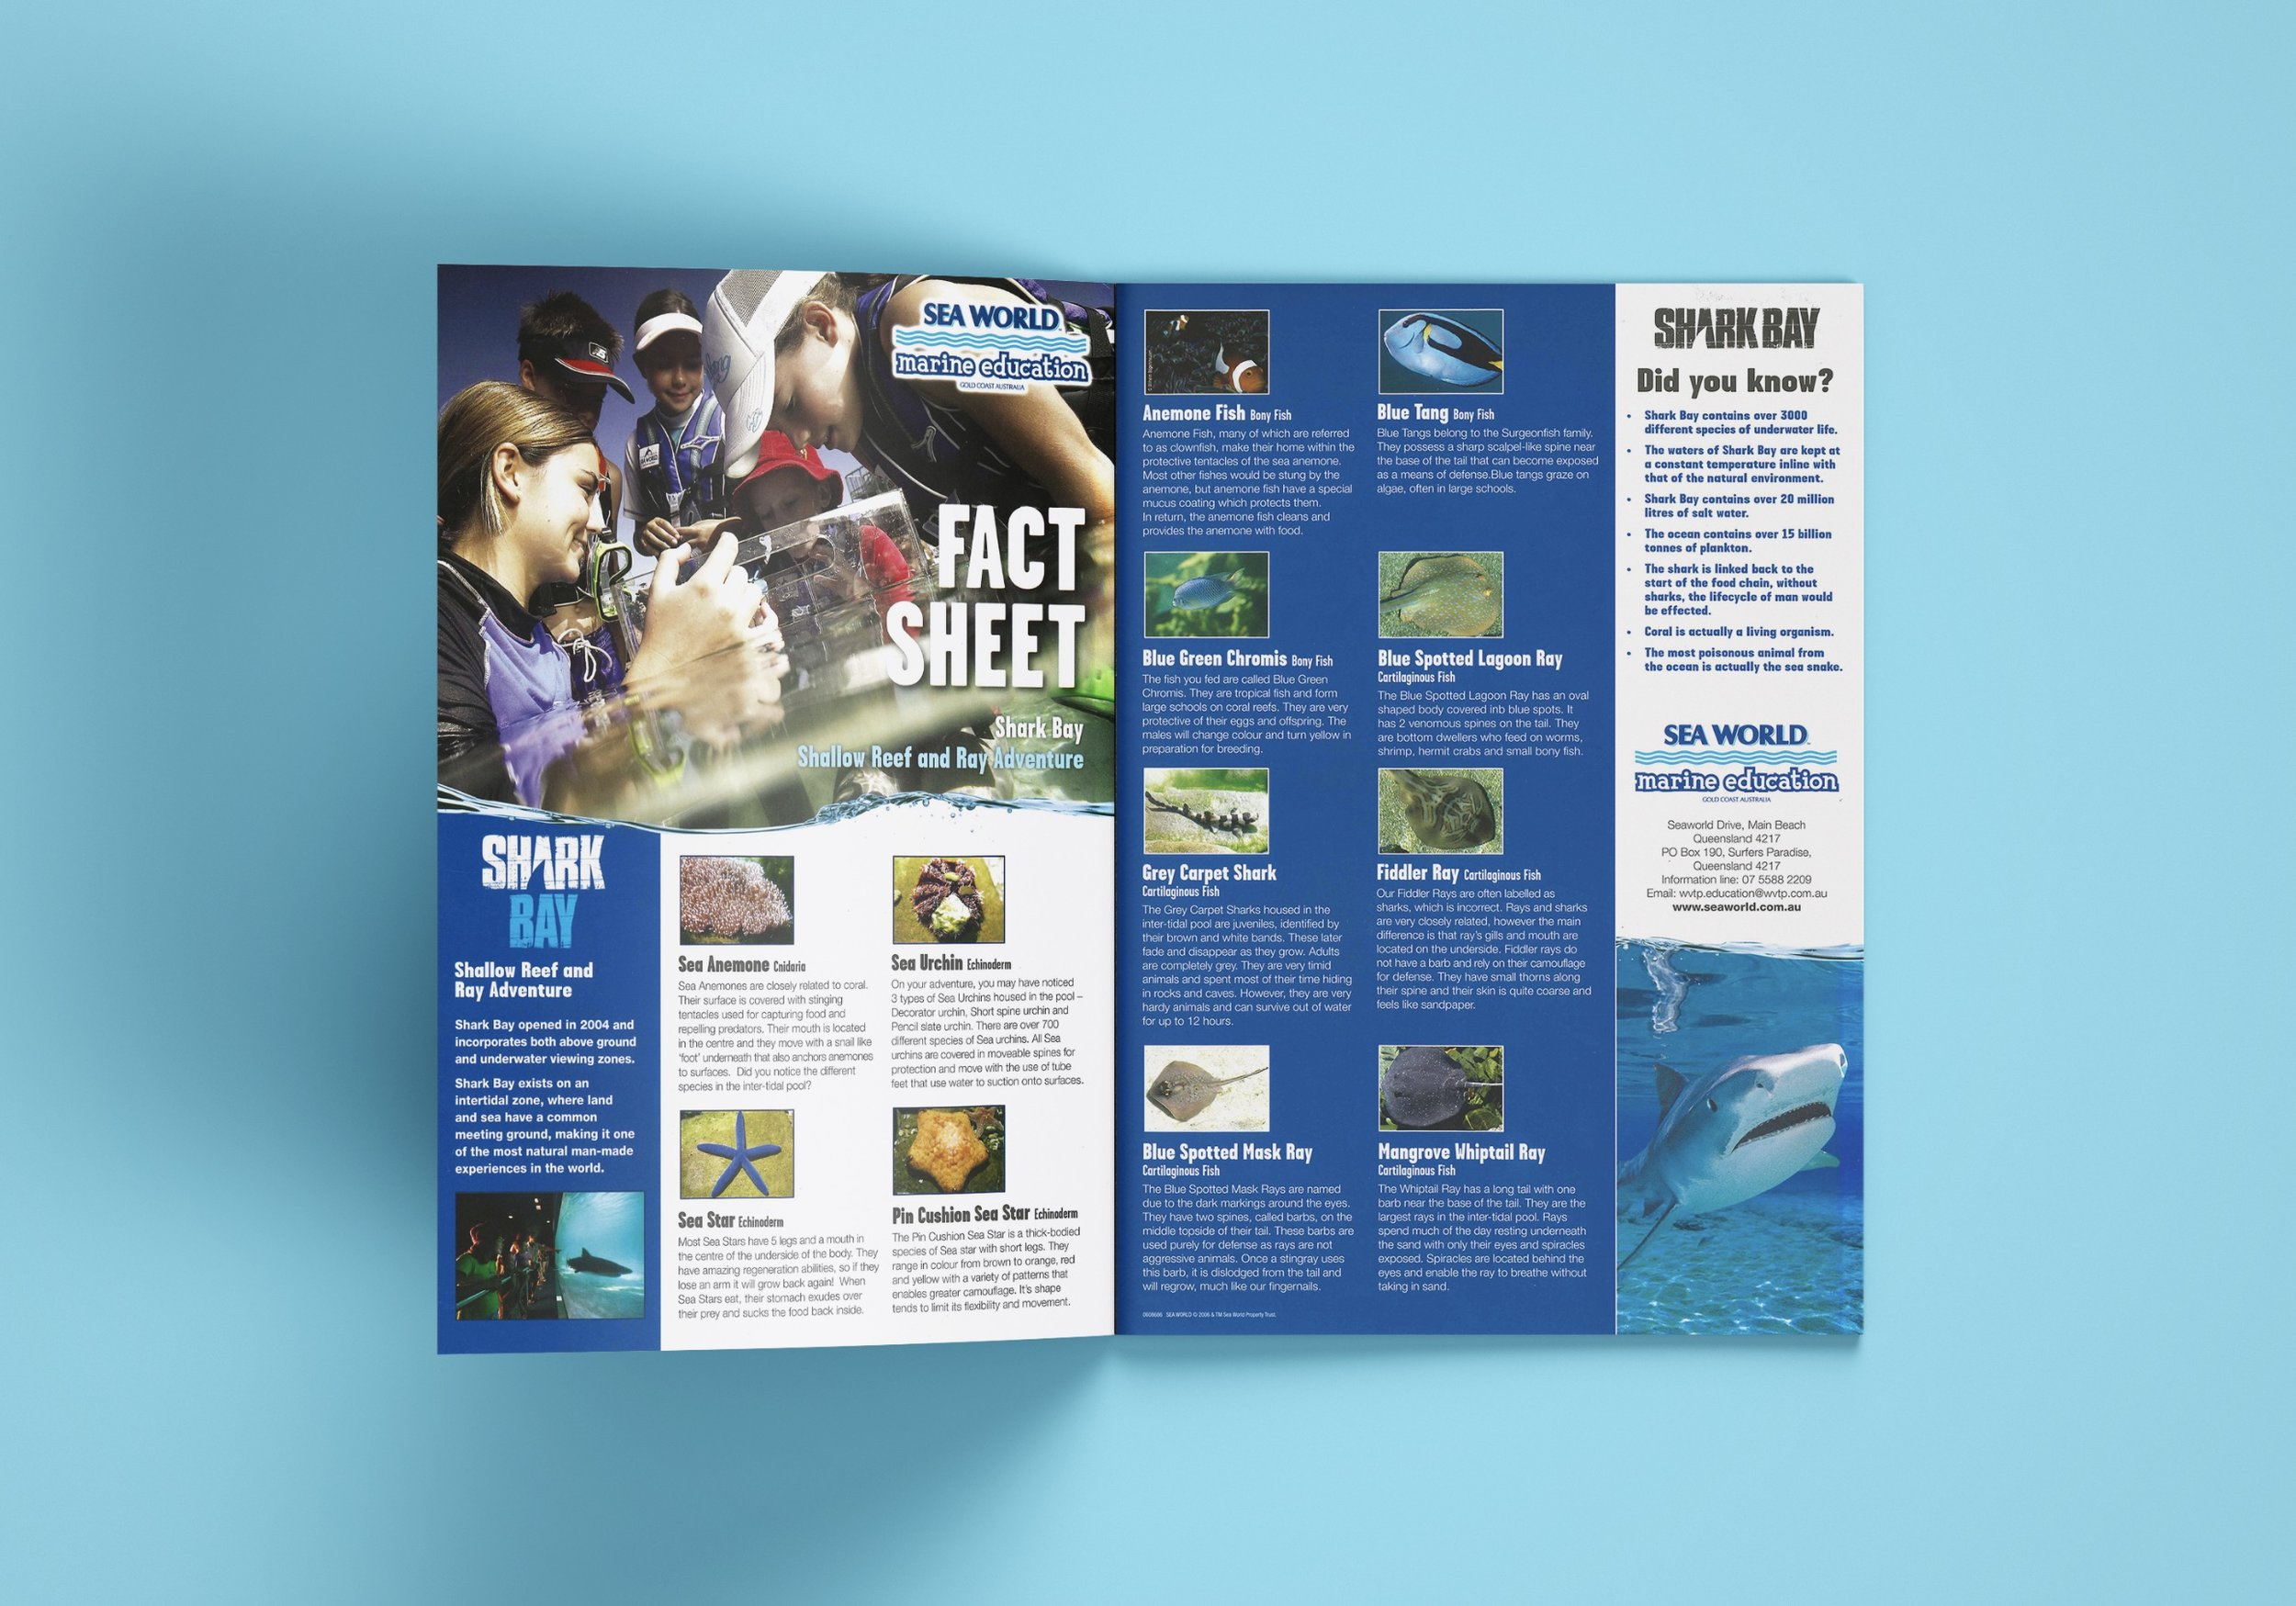 Sea World Fact Sheet.jpg